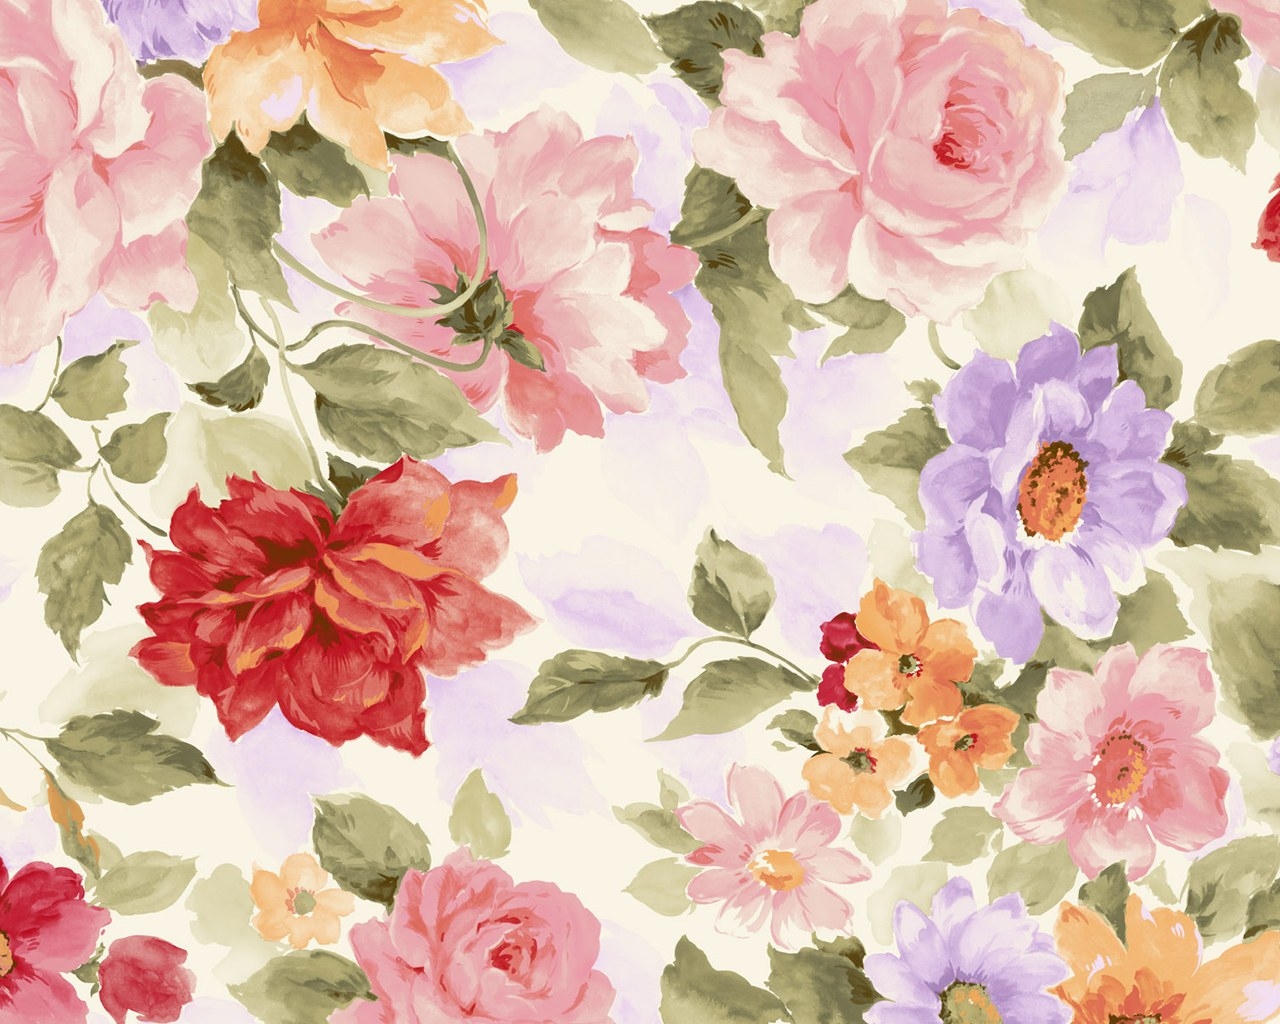 Colors in Japanese Style - Sweet Flower Pattern Design 1280*1024 Wallpaper 3